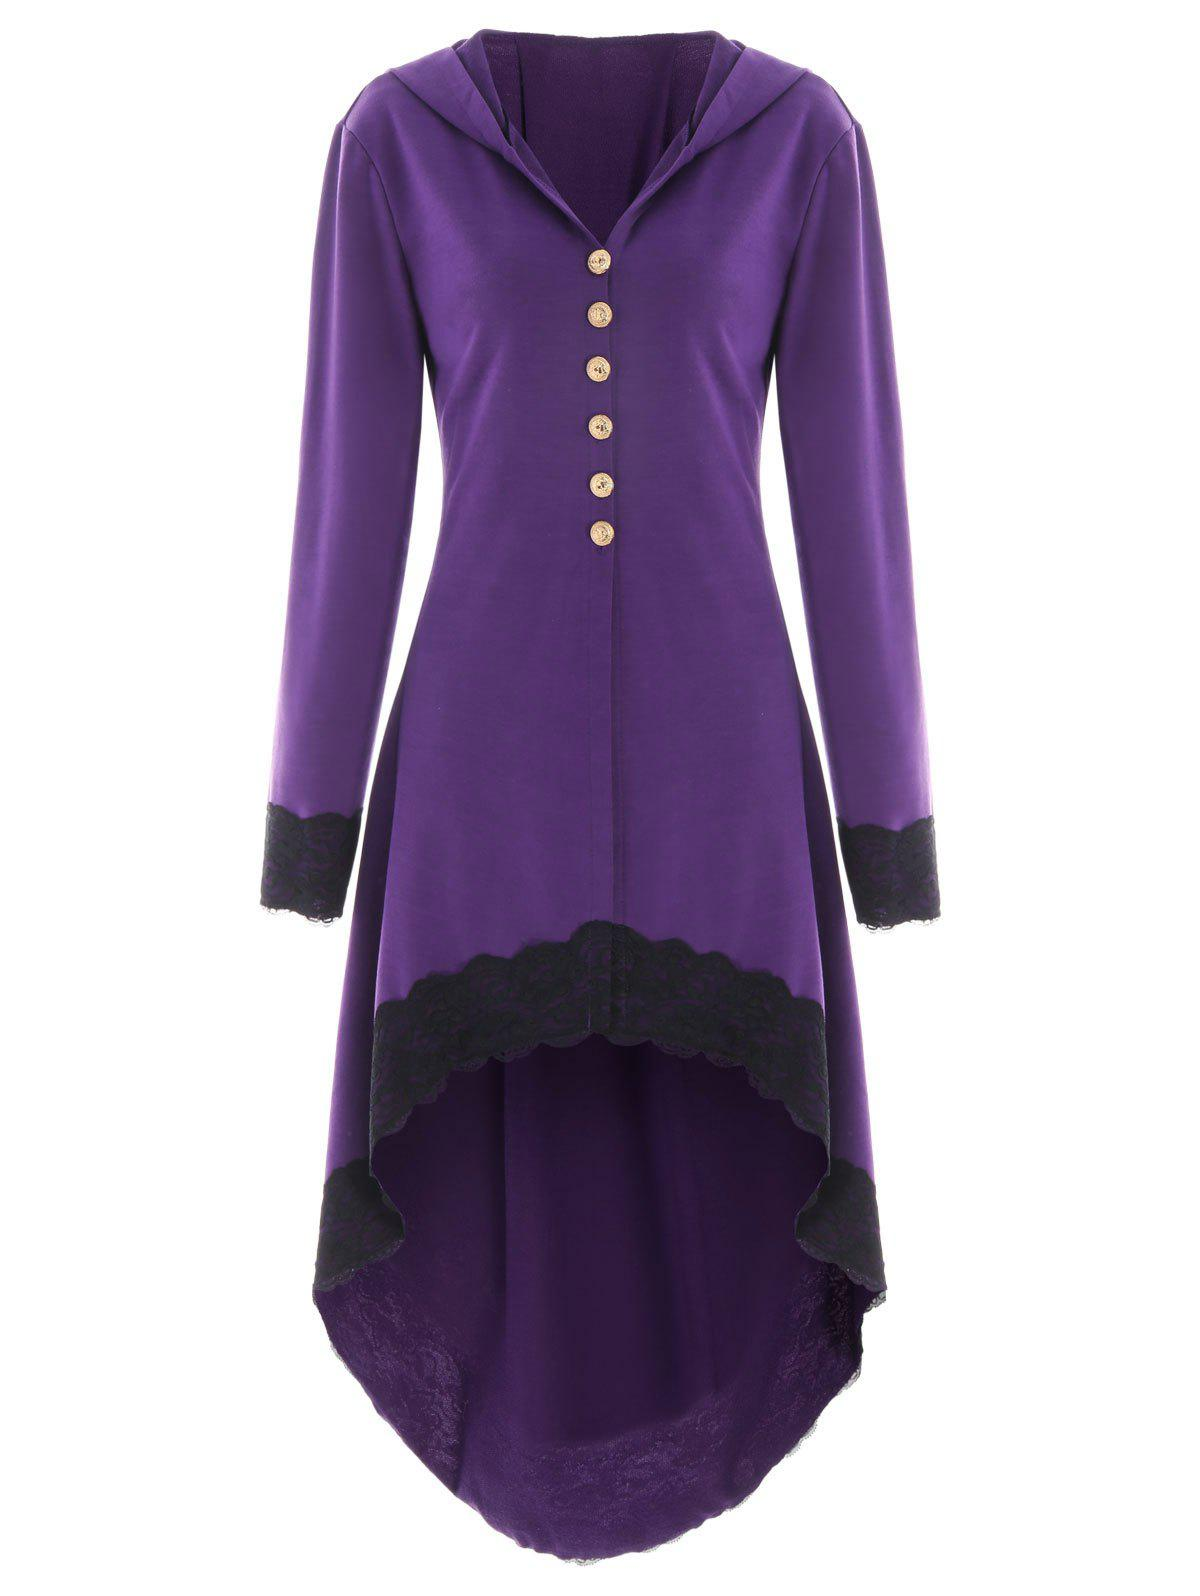 Hooded Lace Insert Lace-up High Low CoatWOMEN<br><br>Size: M; Color: PURPLE; Clothes Type: Others; Material: Polyester,Spandex; Type: Asymmetric Length; Shirt Length: Long; Sleeve Length: Full; Collar: Hooded; Pattern Type: Others; Style: Fashion; Season: Fall,Spring; Weight: 0.6050kg; Package Contents: 1 x Coat;